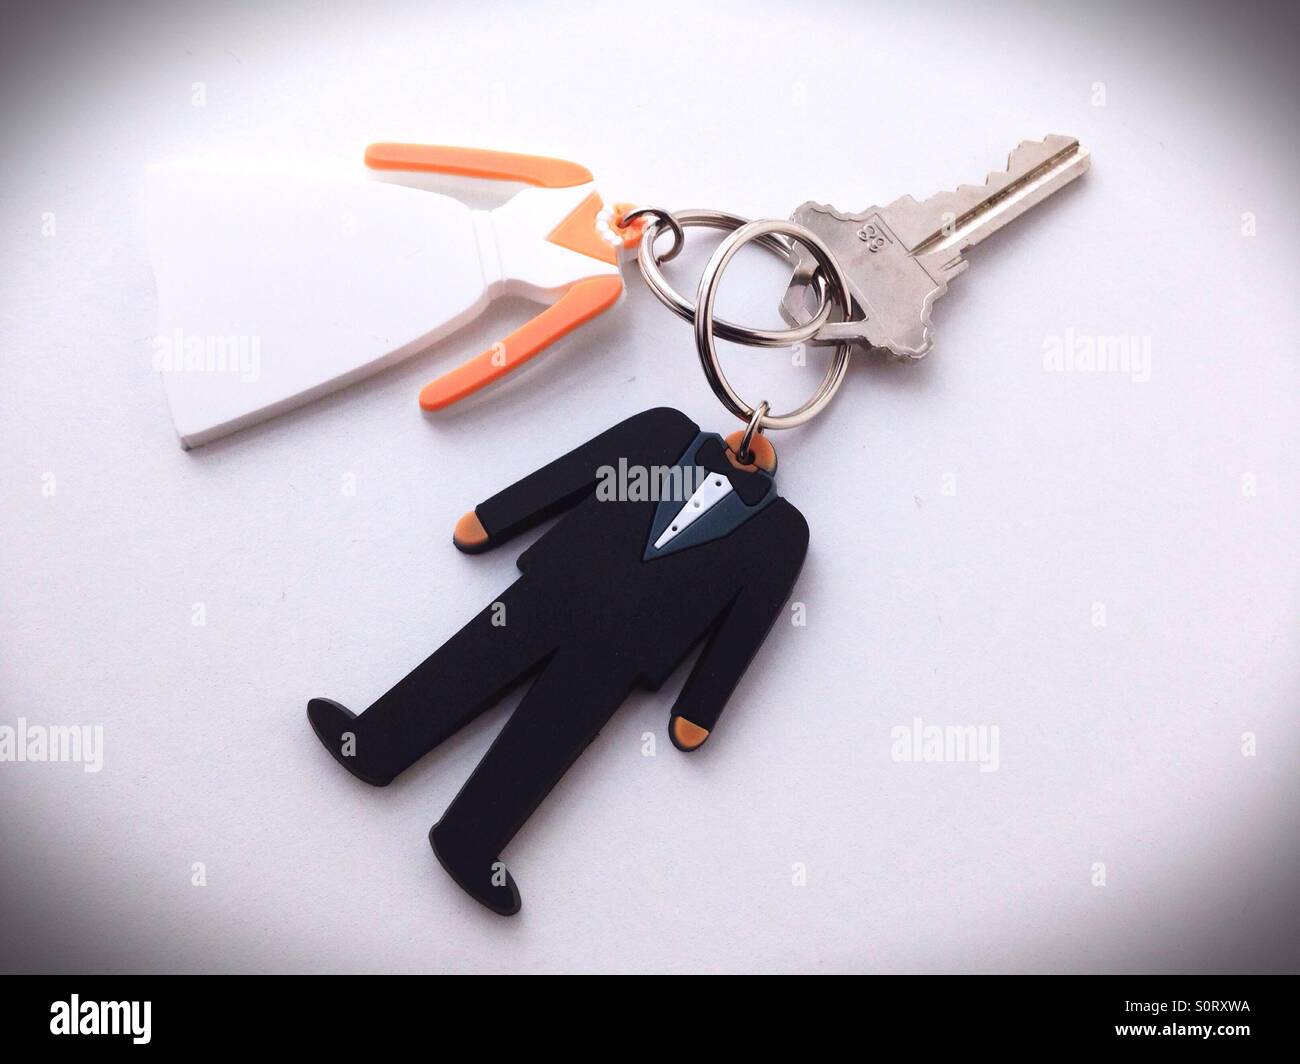 Key rings in the shape of a bride and groom sharing one single key. - Stock Image